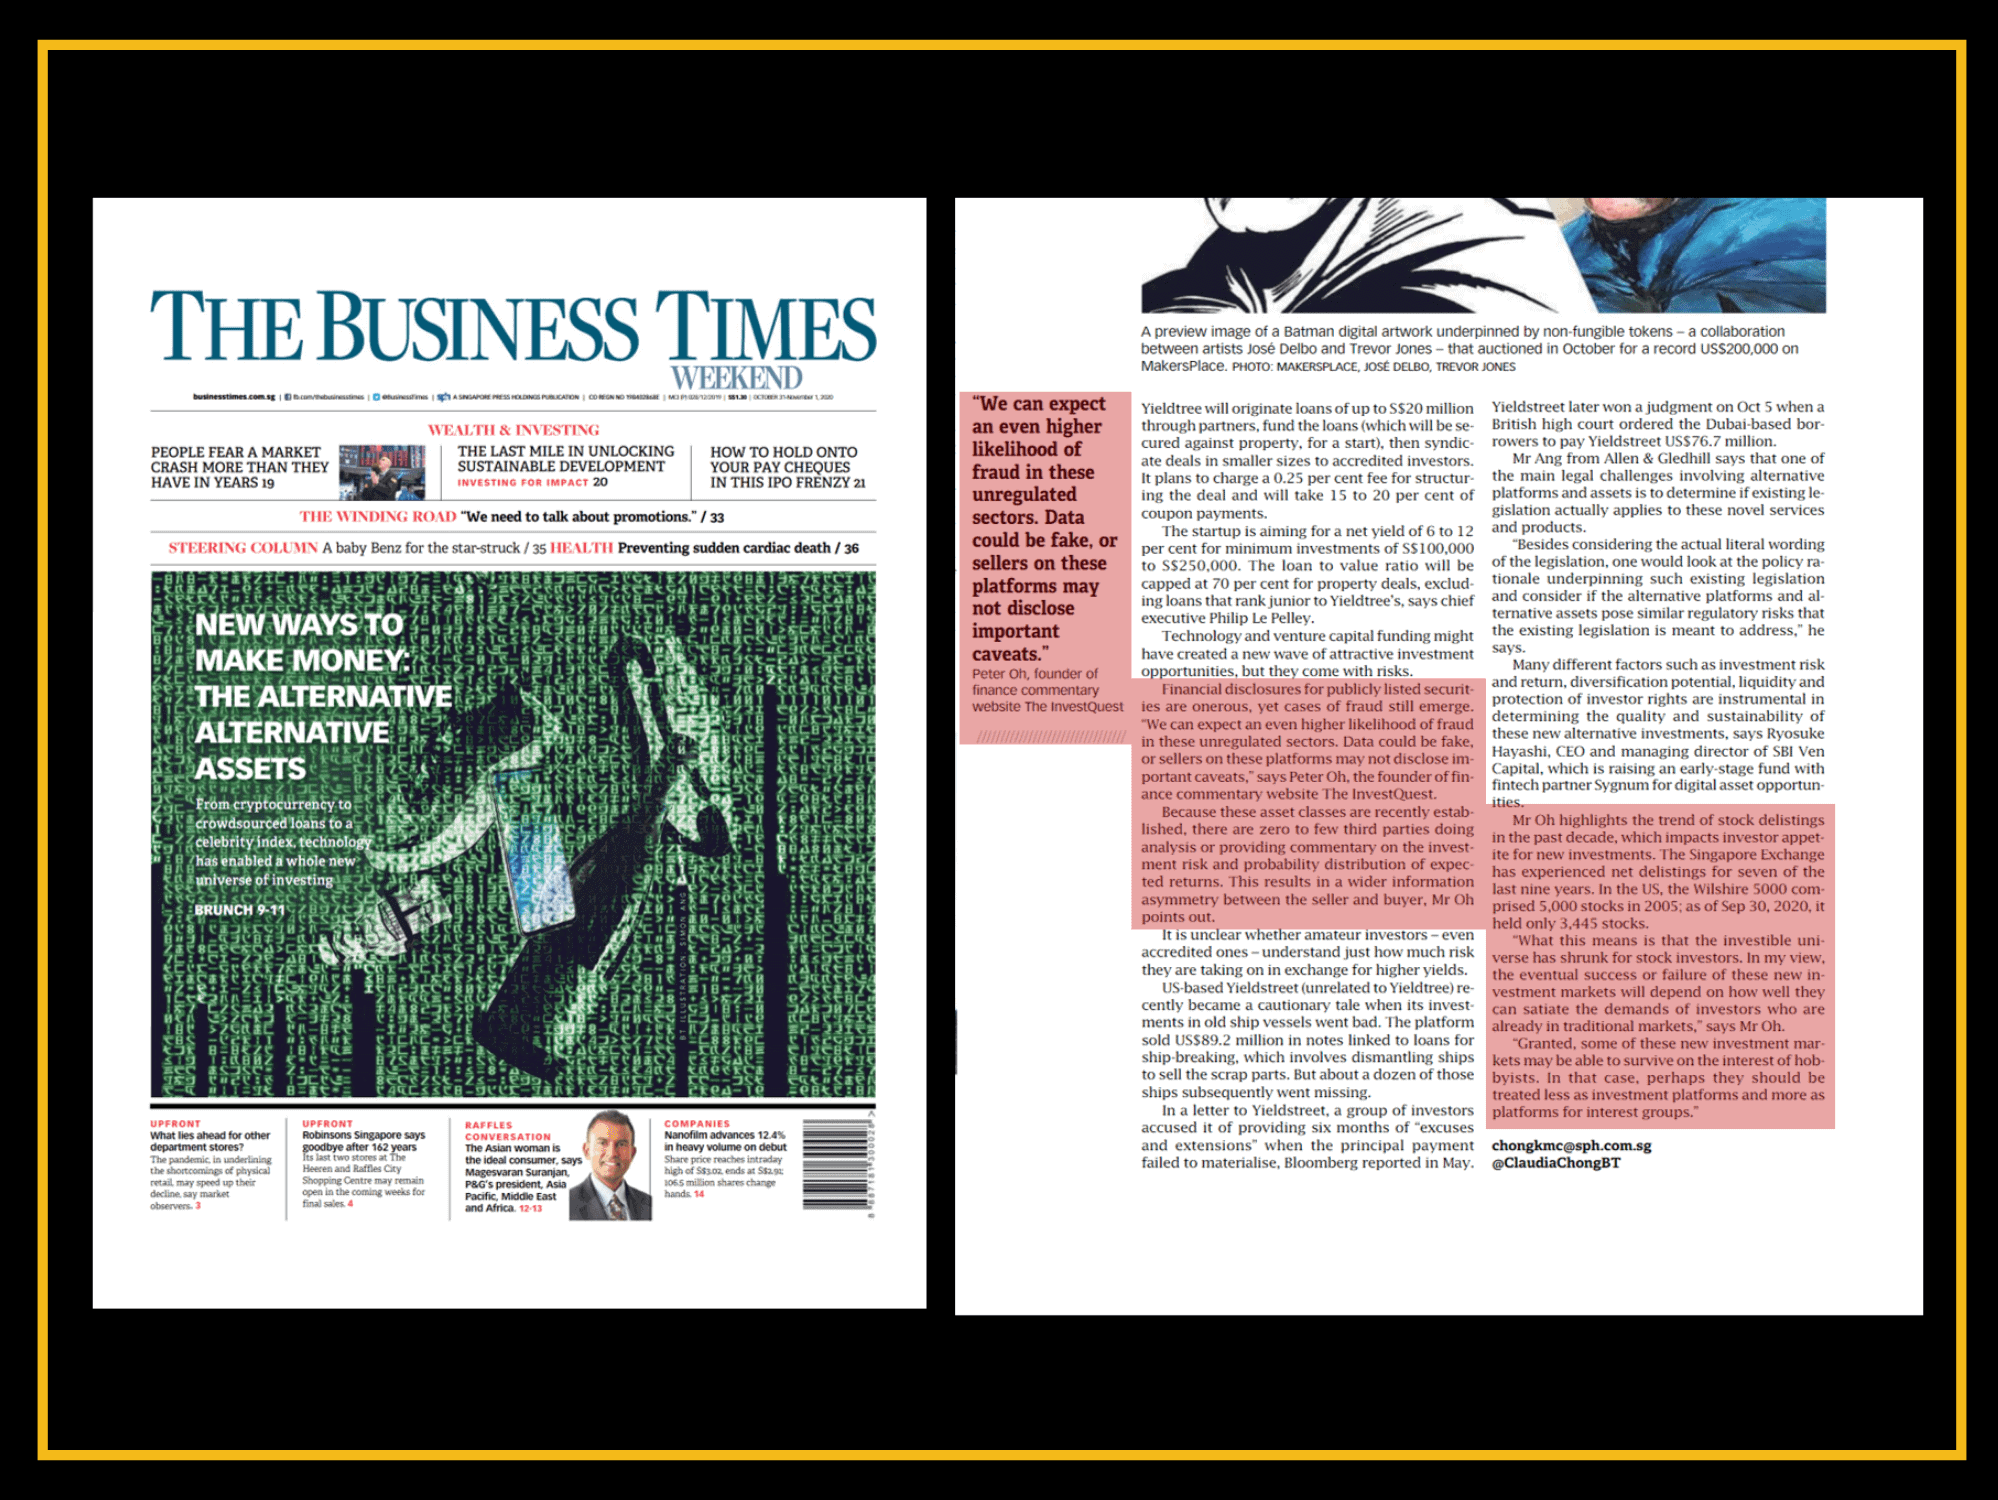 We've been quoted by The Business Times!